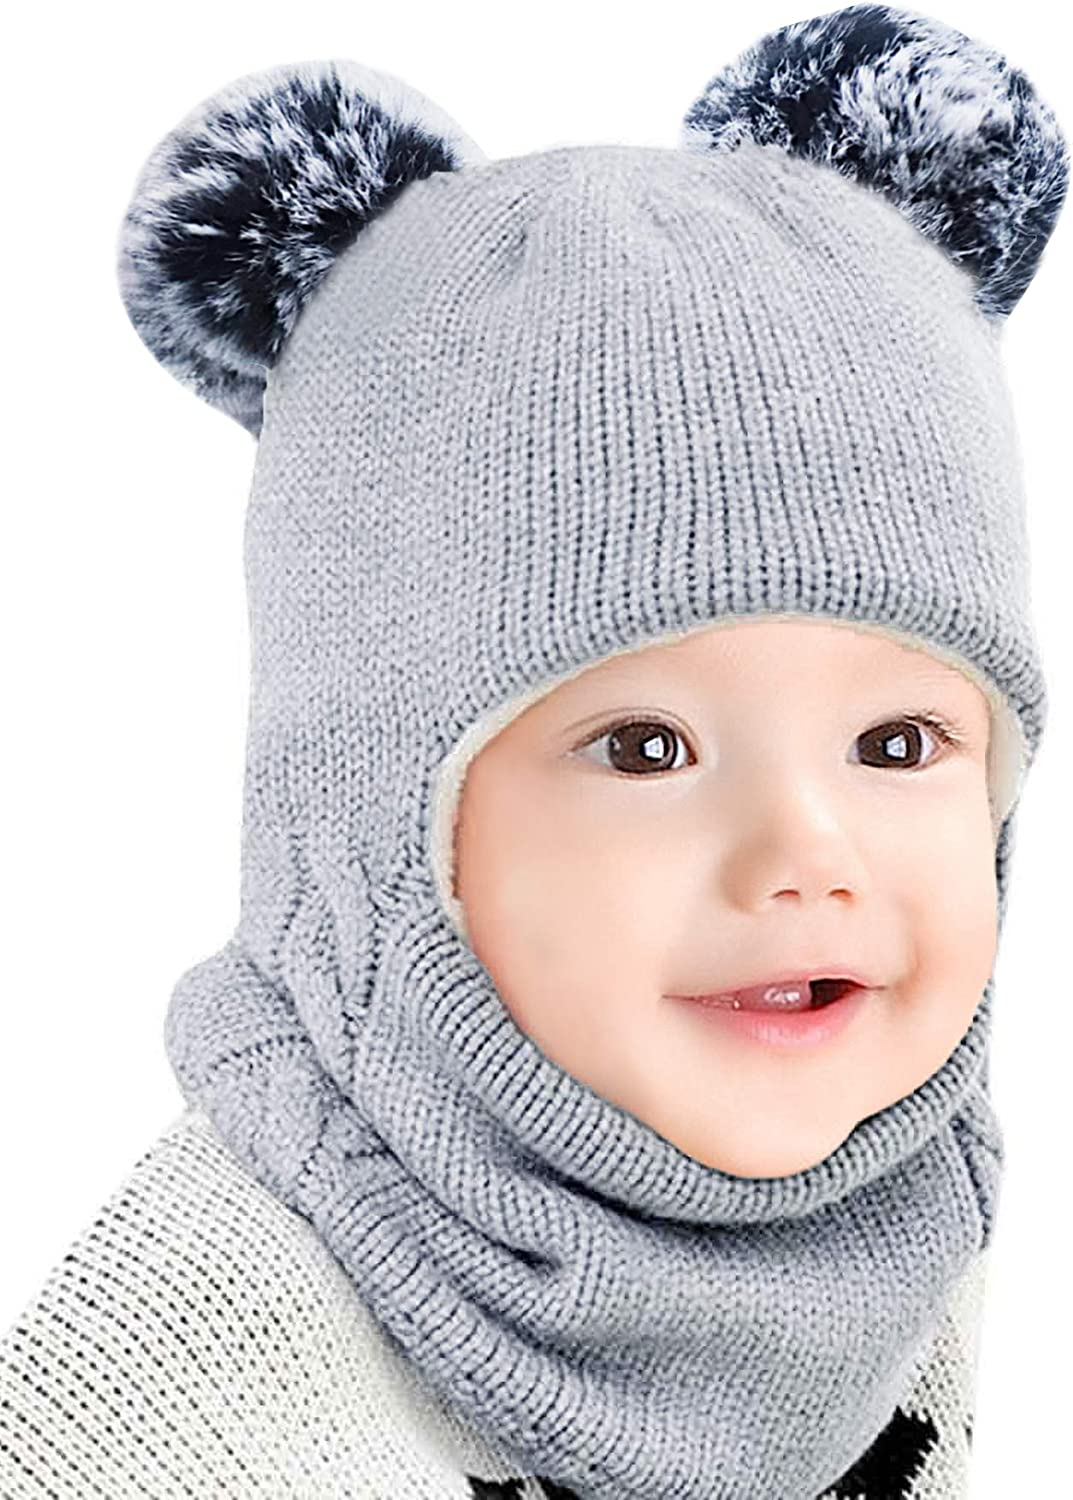 Kids Winter Hat with Ear-Flaps Scarf,Toddler Girls Boys Knit Beanie Fleece,Baby Hood Skull Caps,1-4T Pink